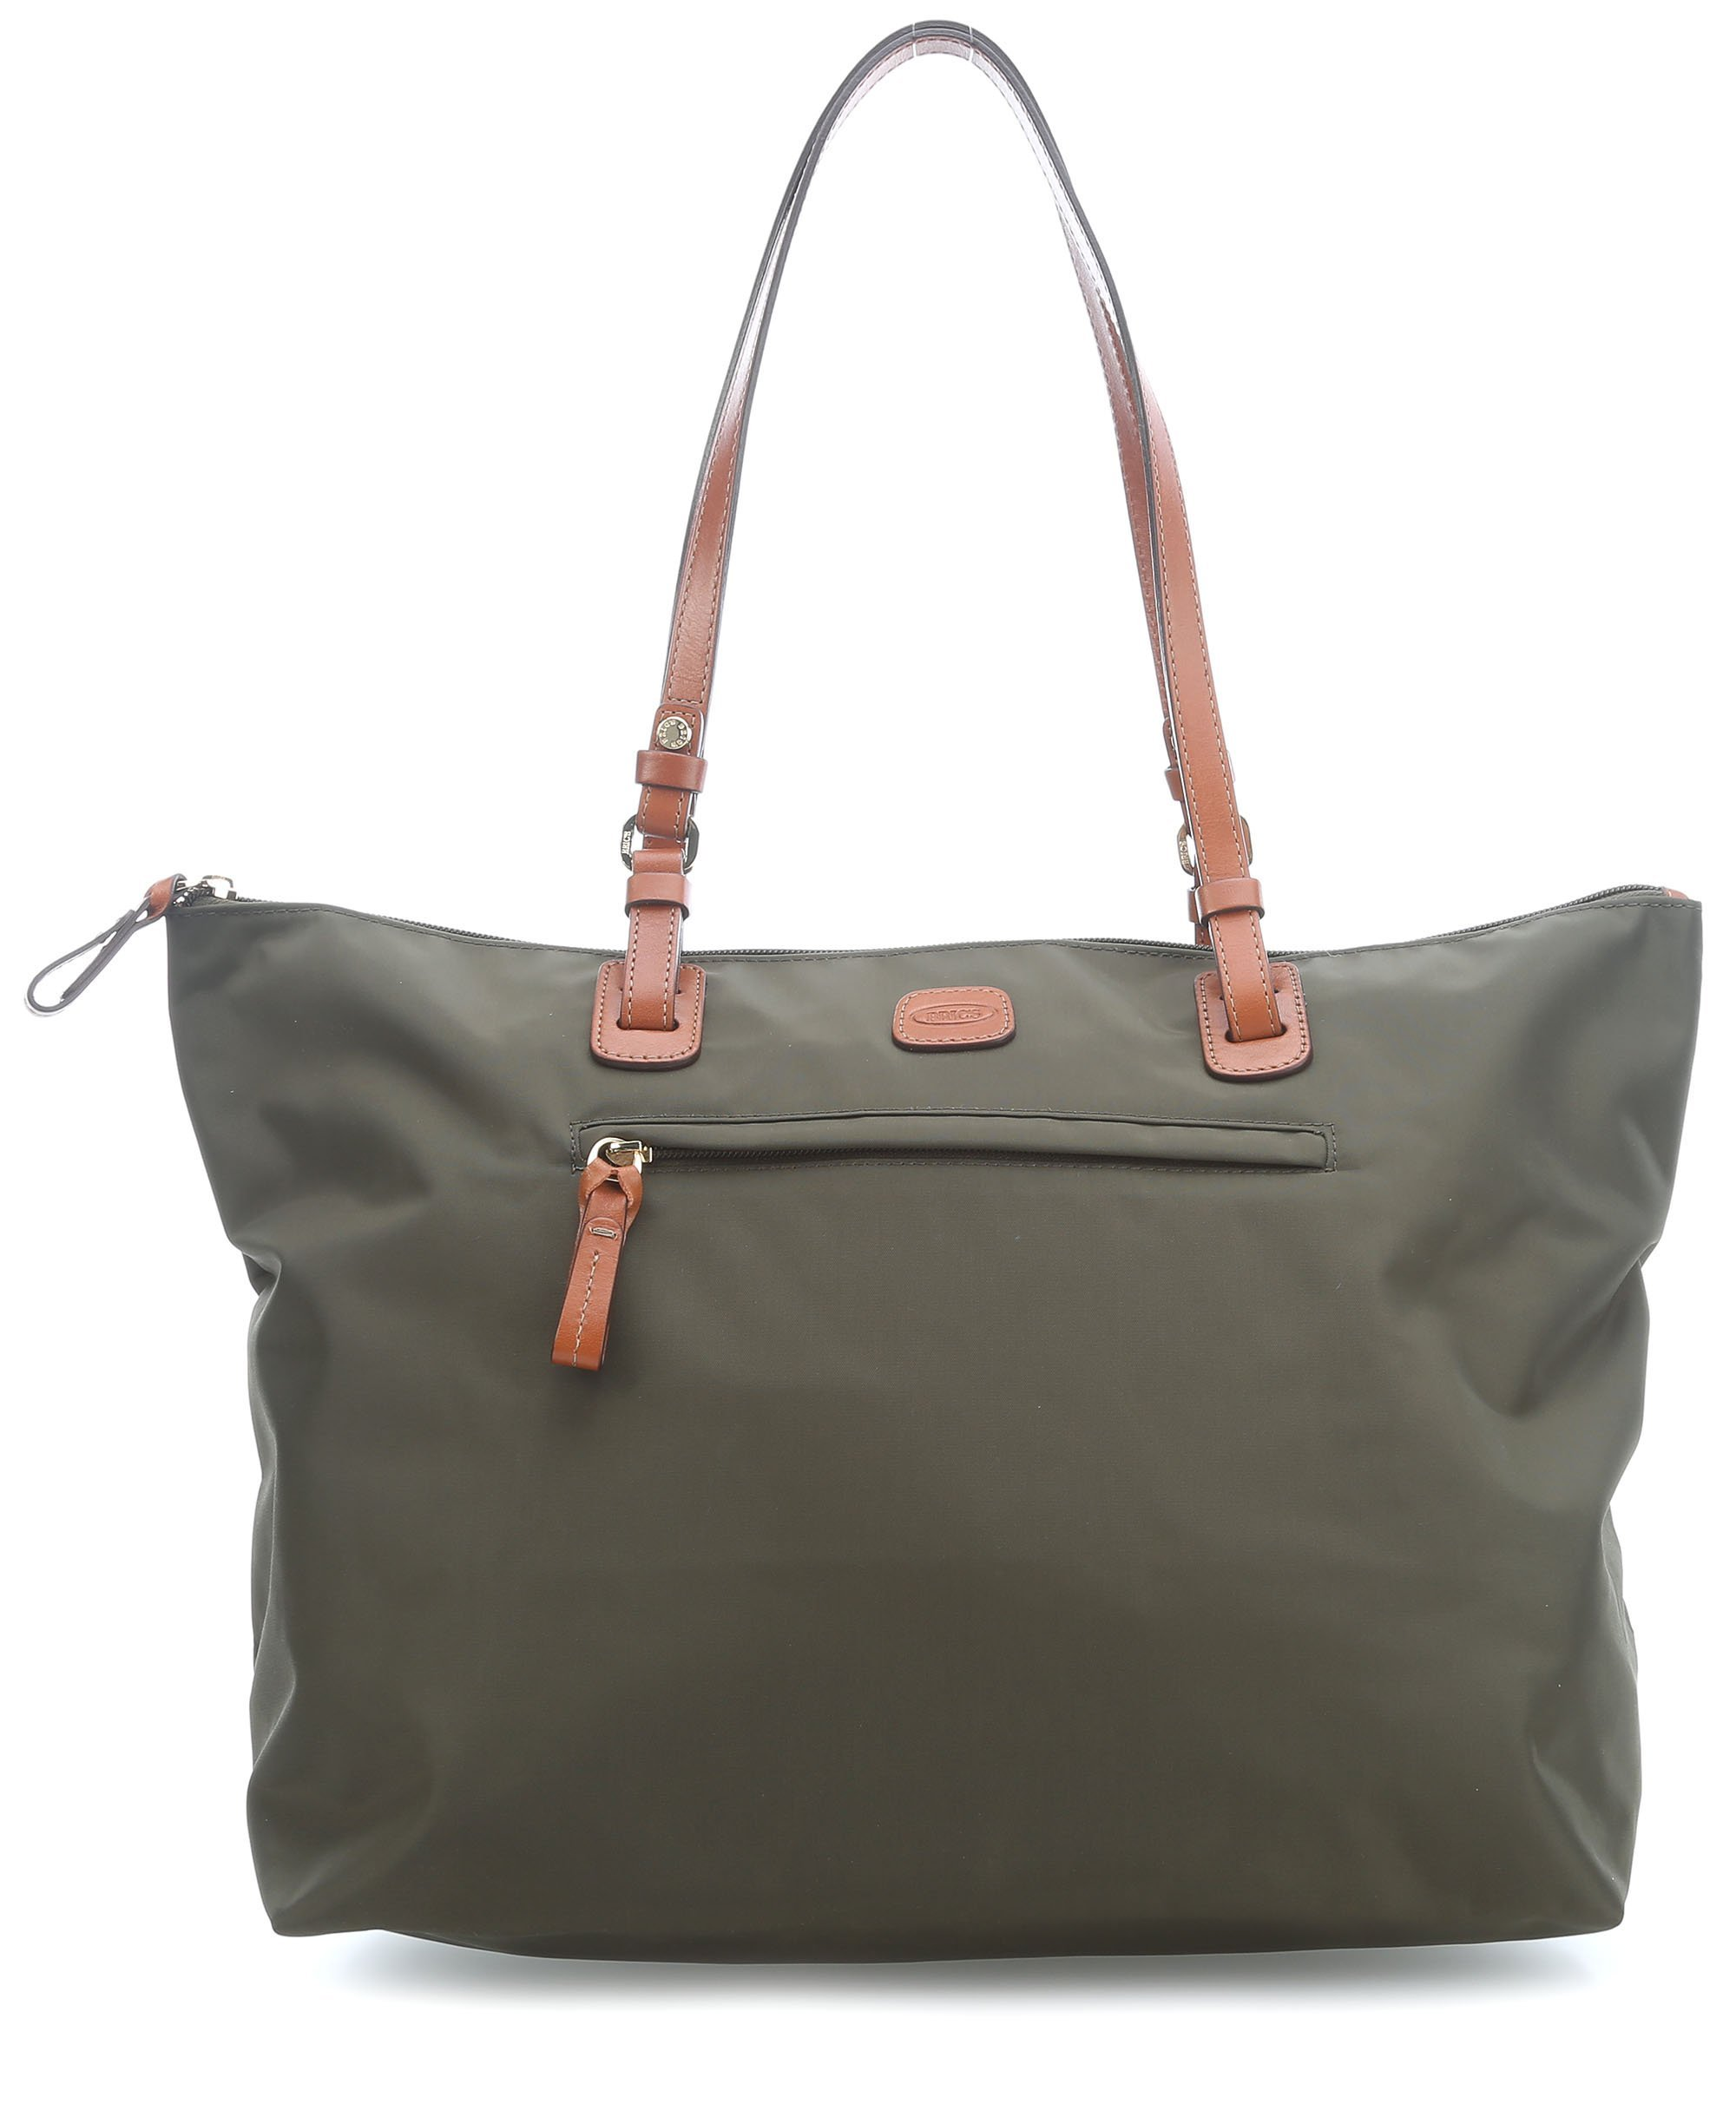 Bric's Women's X x 2.0 Large Sportina Shopper Tote Travel Shoulder Bag, Olive, One Size by Bric's